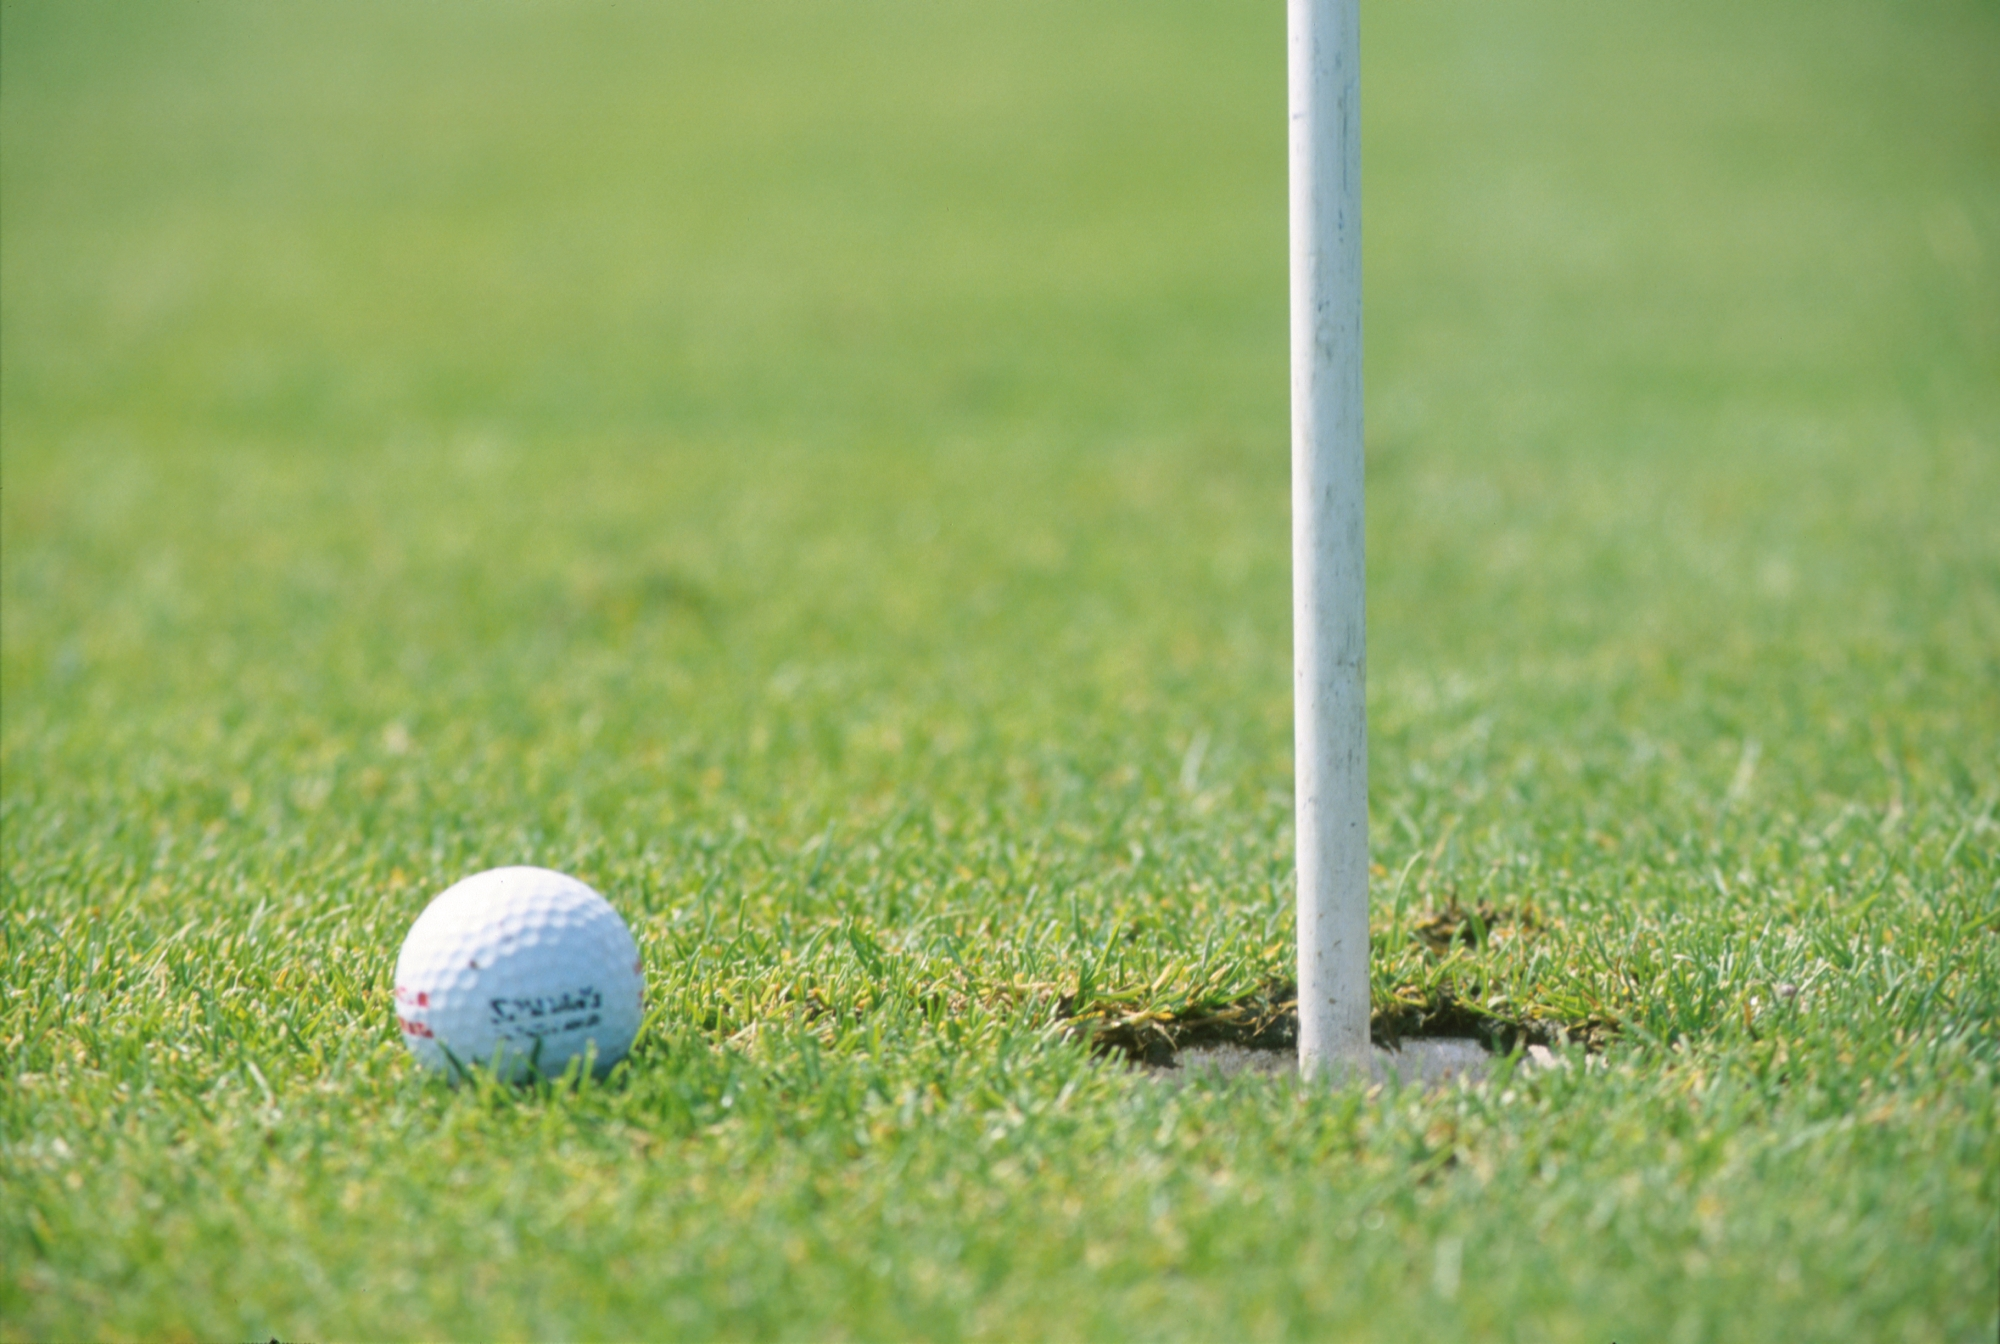 A local RSL branch is having its annual golf fundraiser.